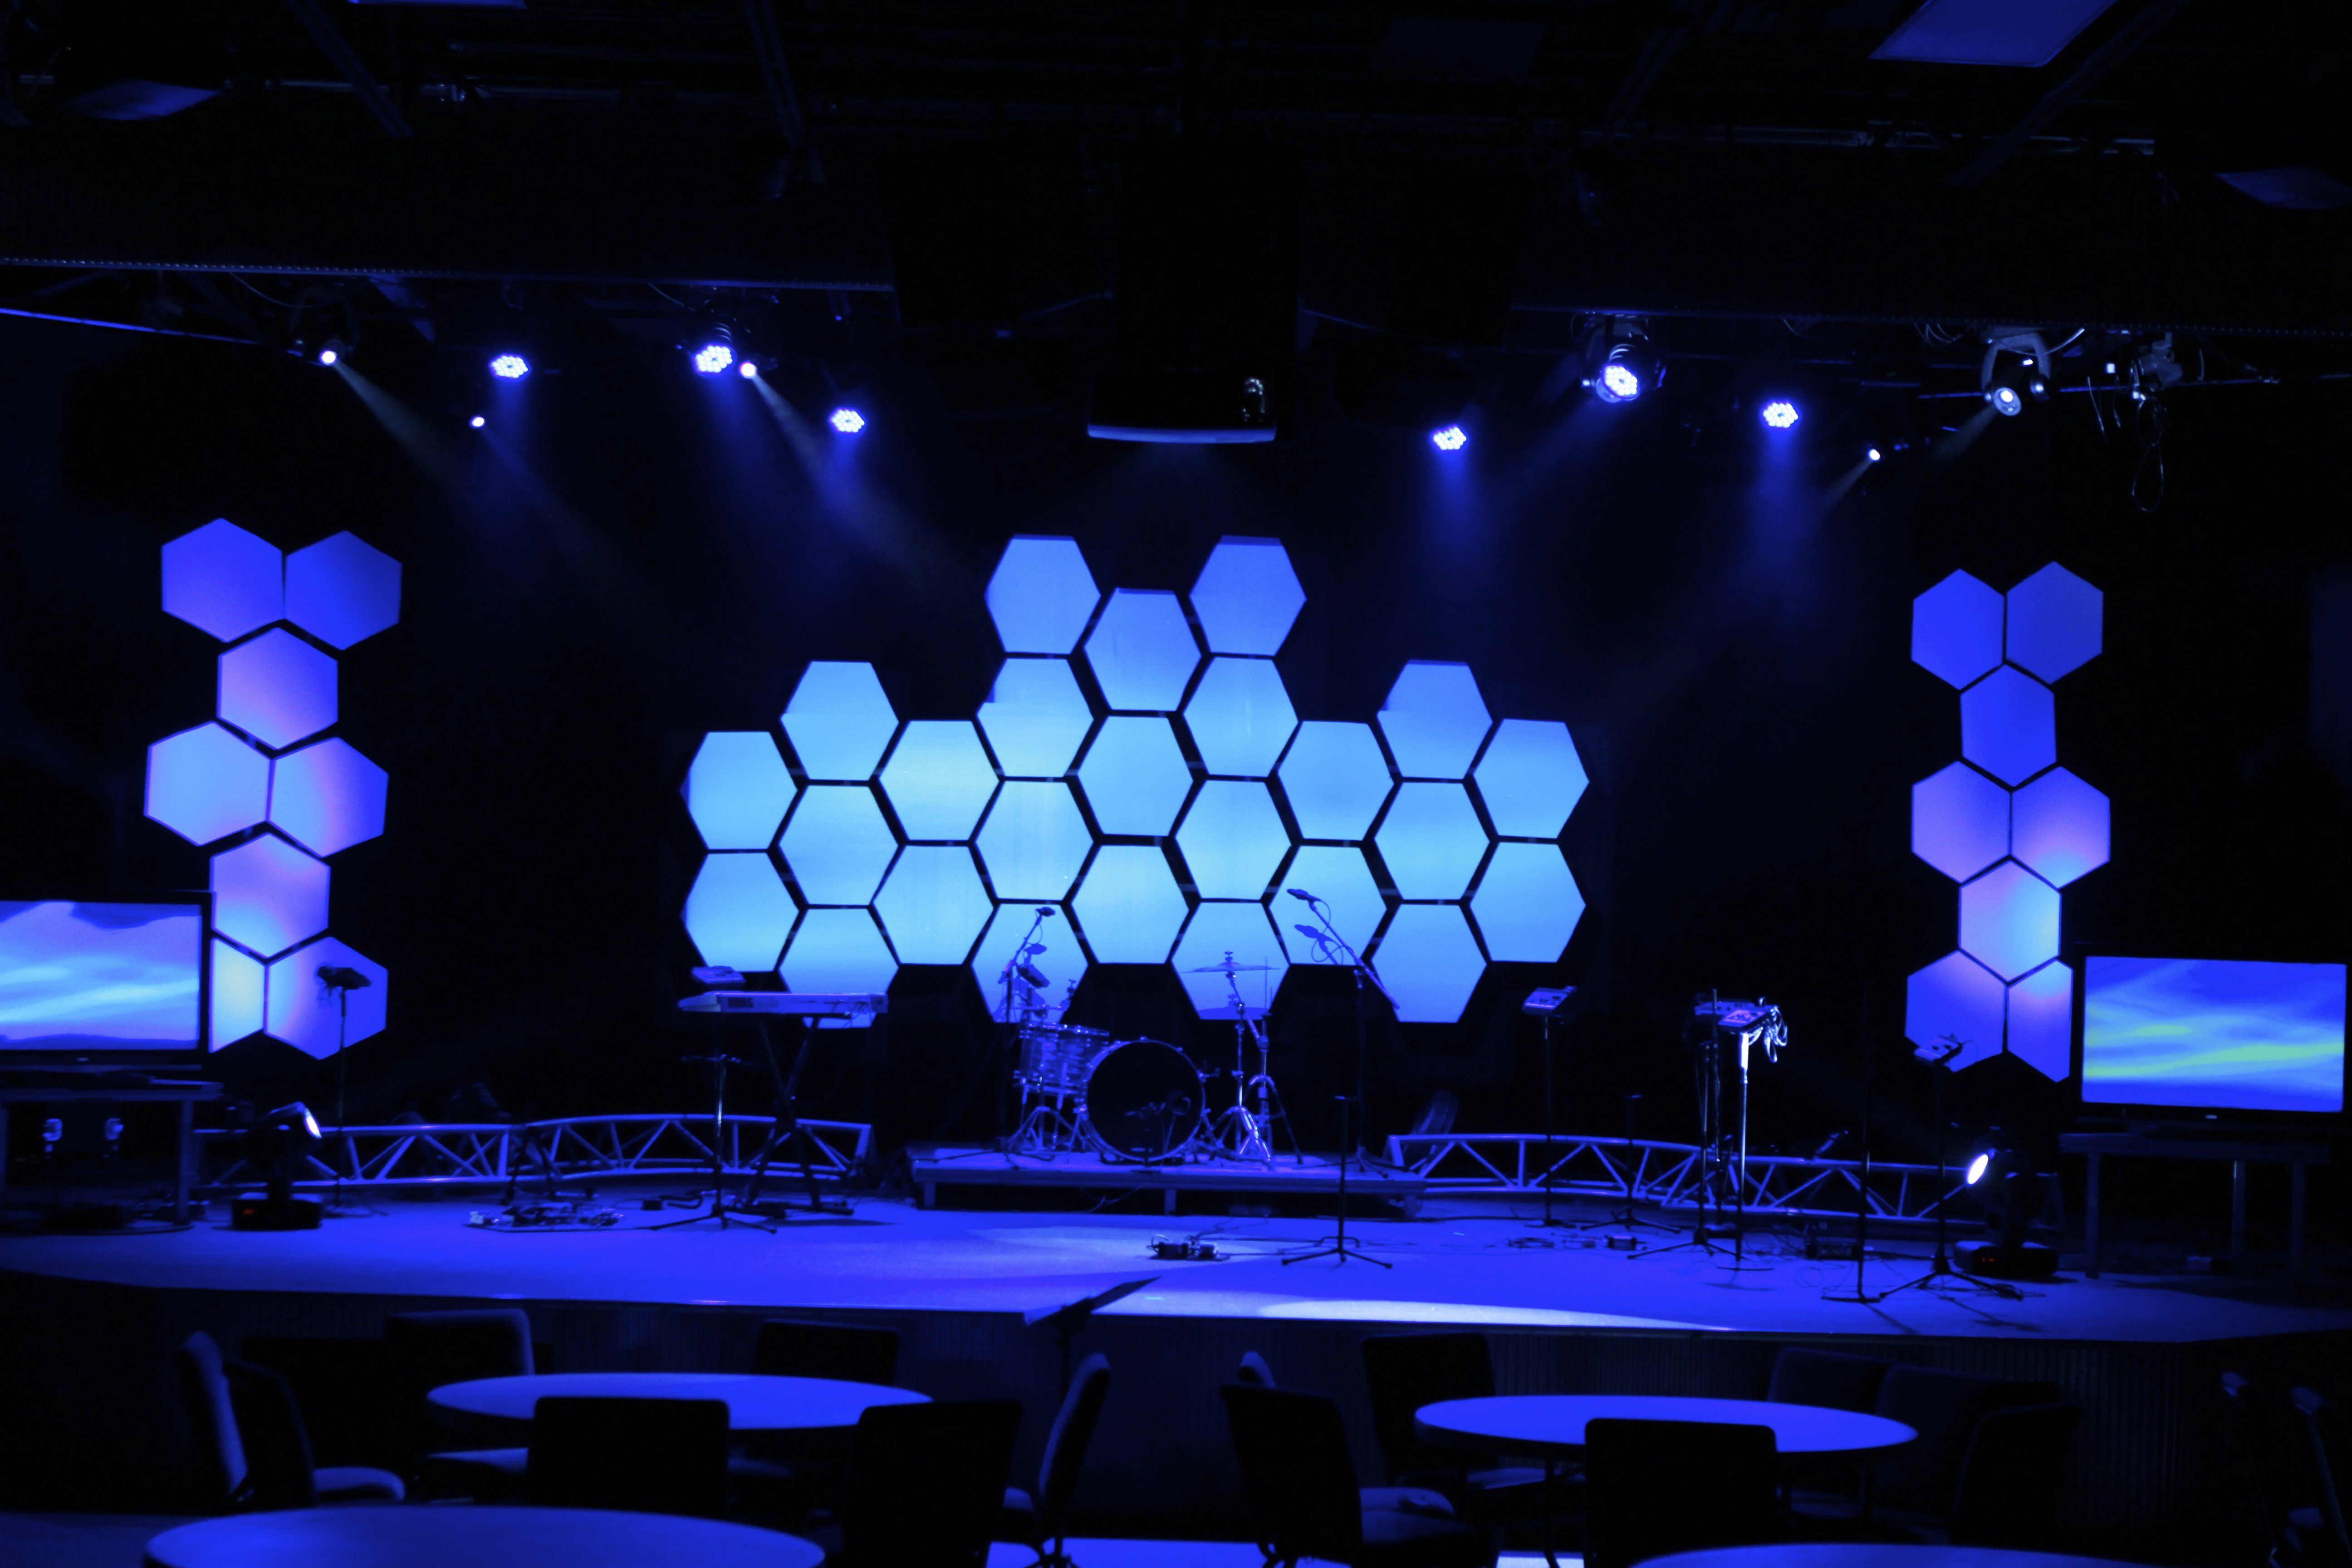 MAKING ROOM INSPIRATION - Hexagon stage design | Church | Stage ...